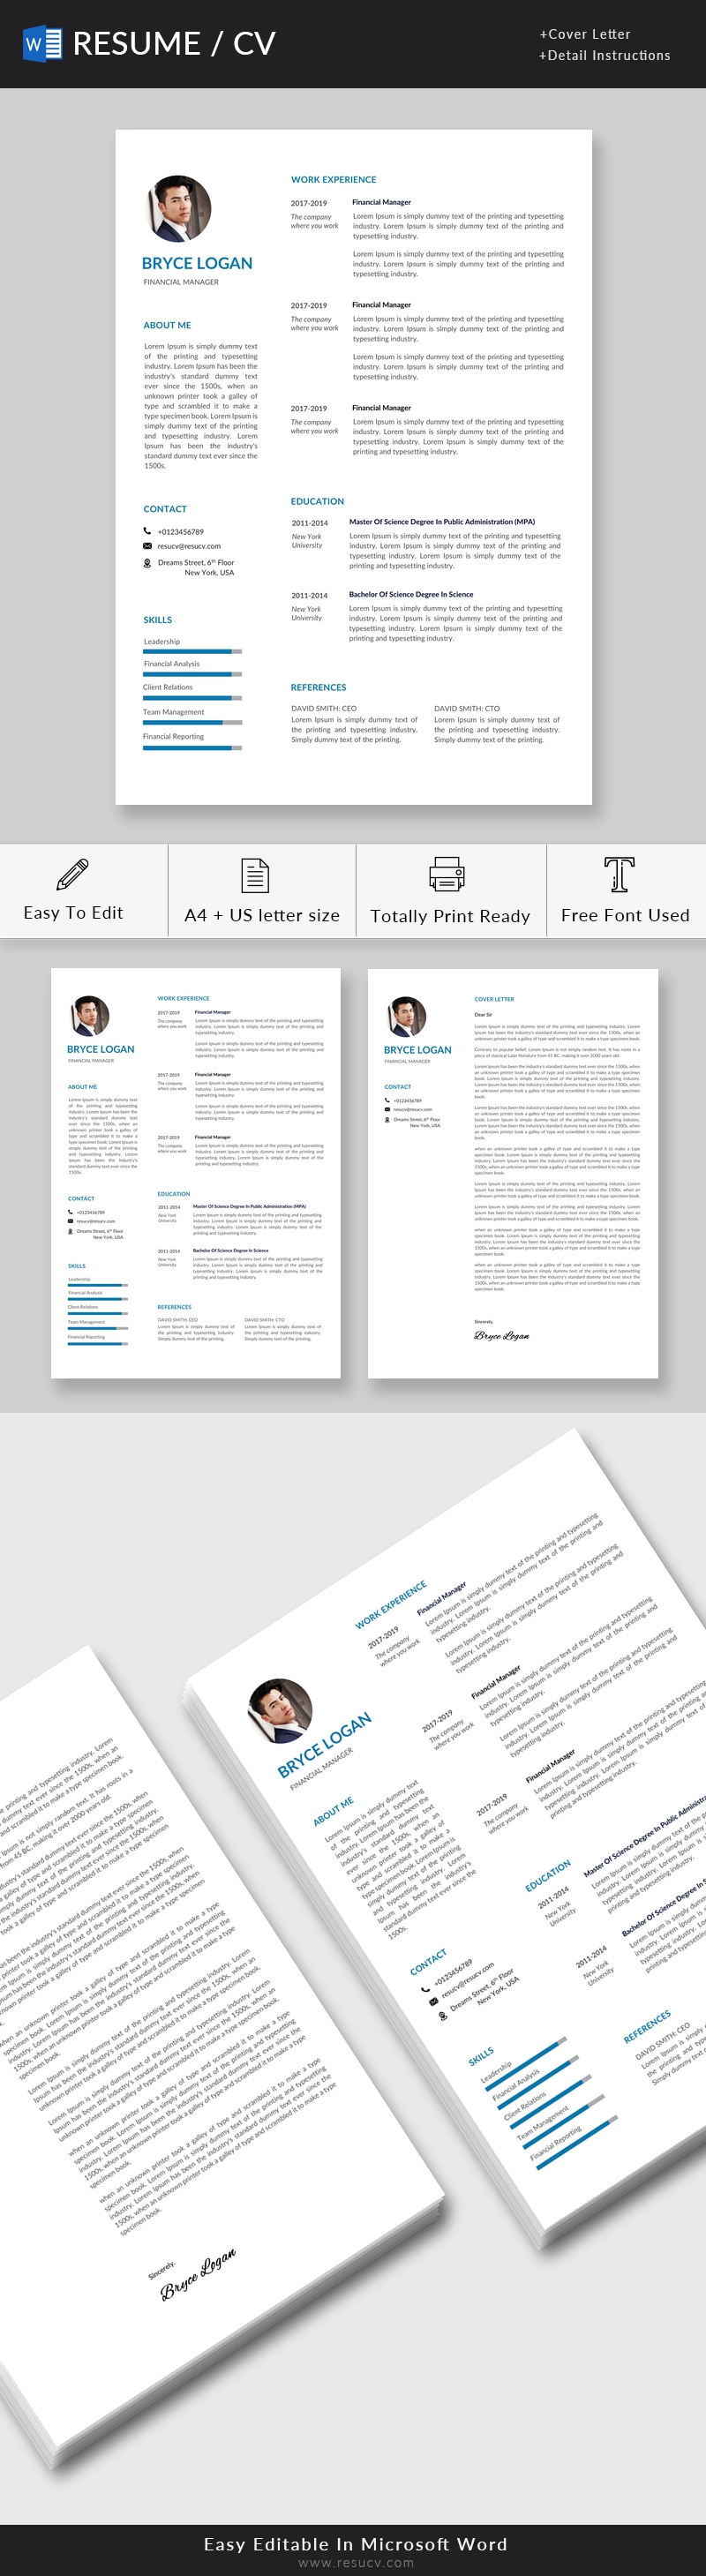 Clean Modern Financial Manager Resume Template, Best CV Template Word, One Page